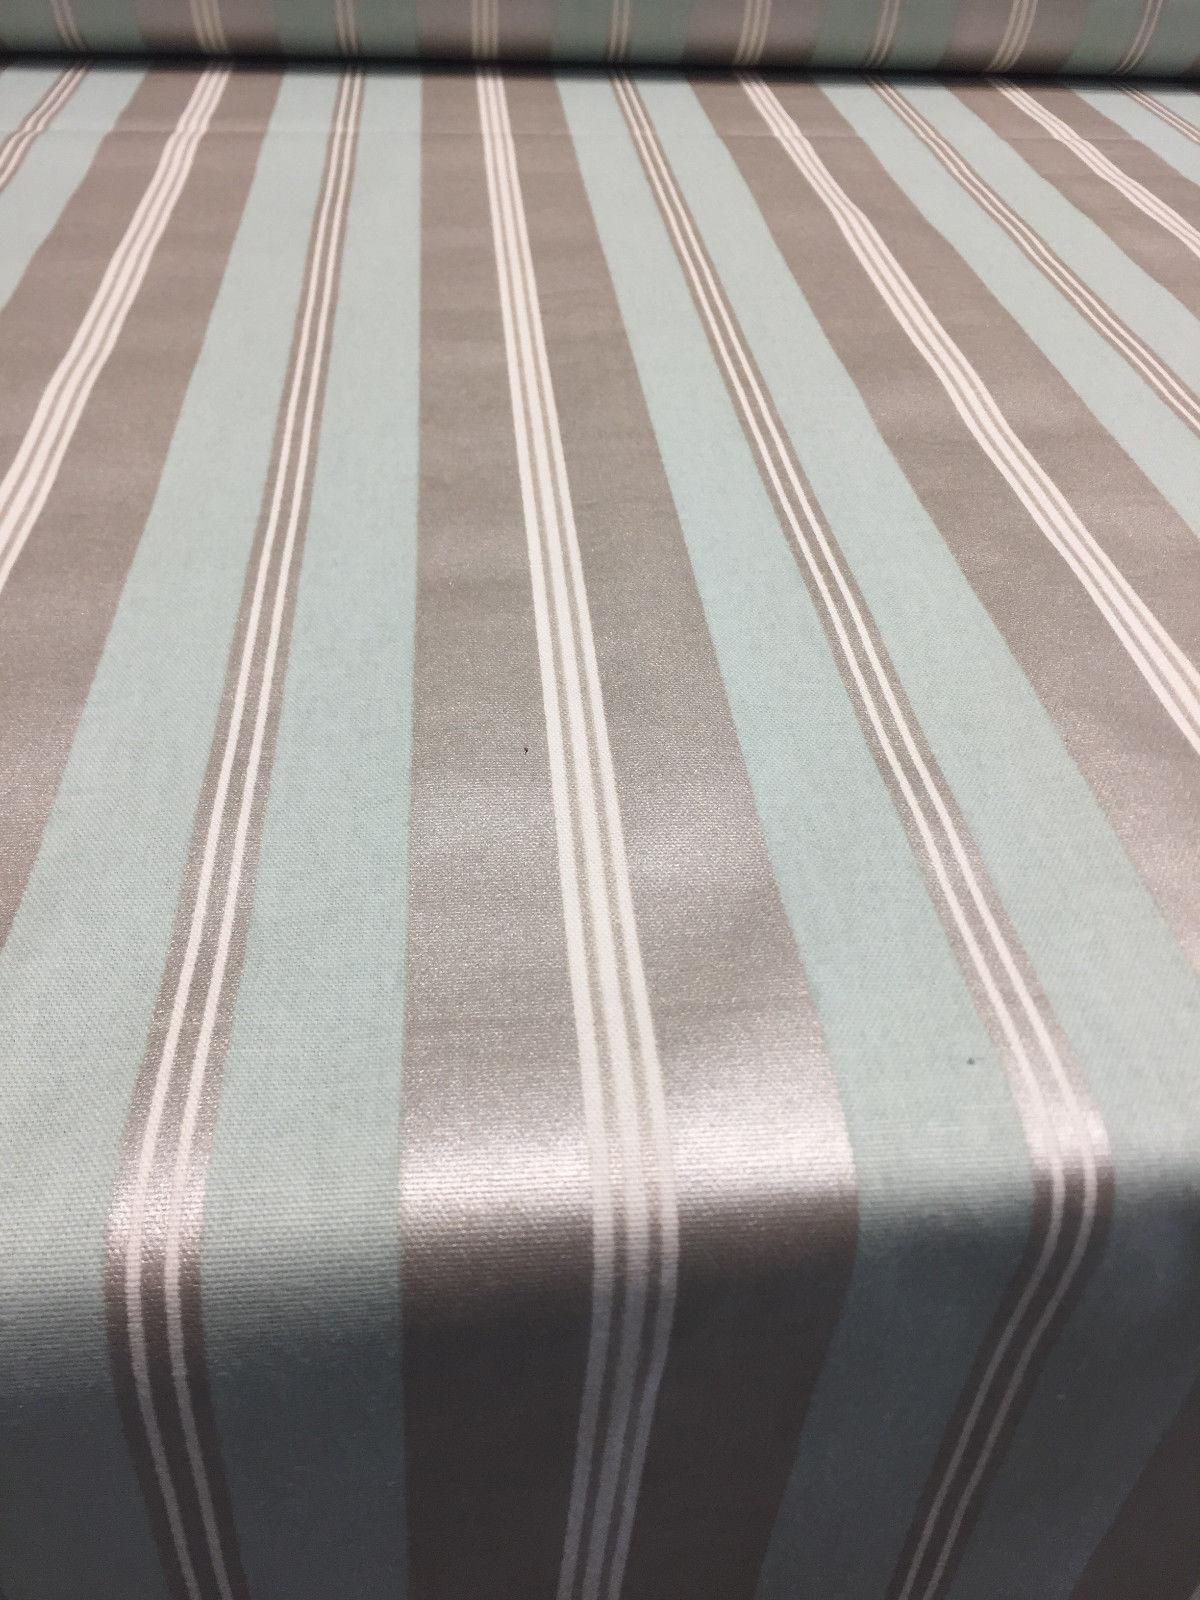 Sold by the Yard Off White//Light /& Medium Brown Striped Upholstery Fabric